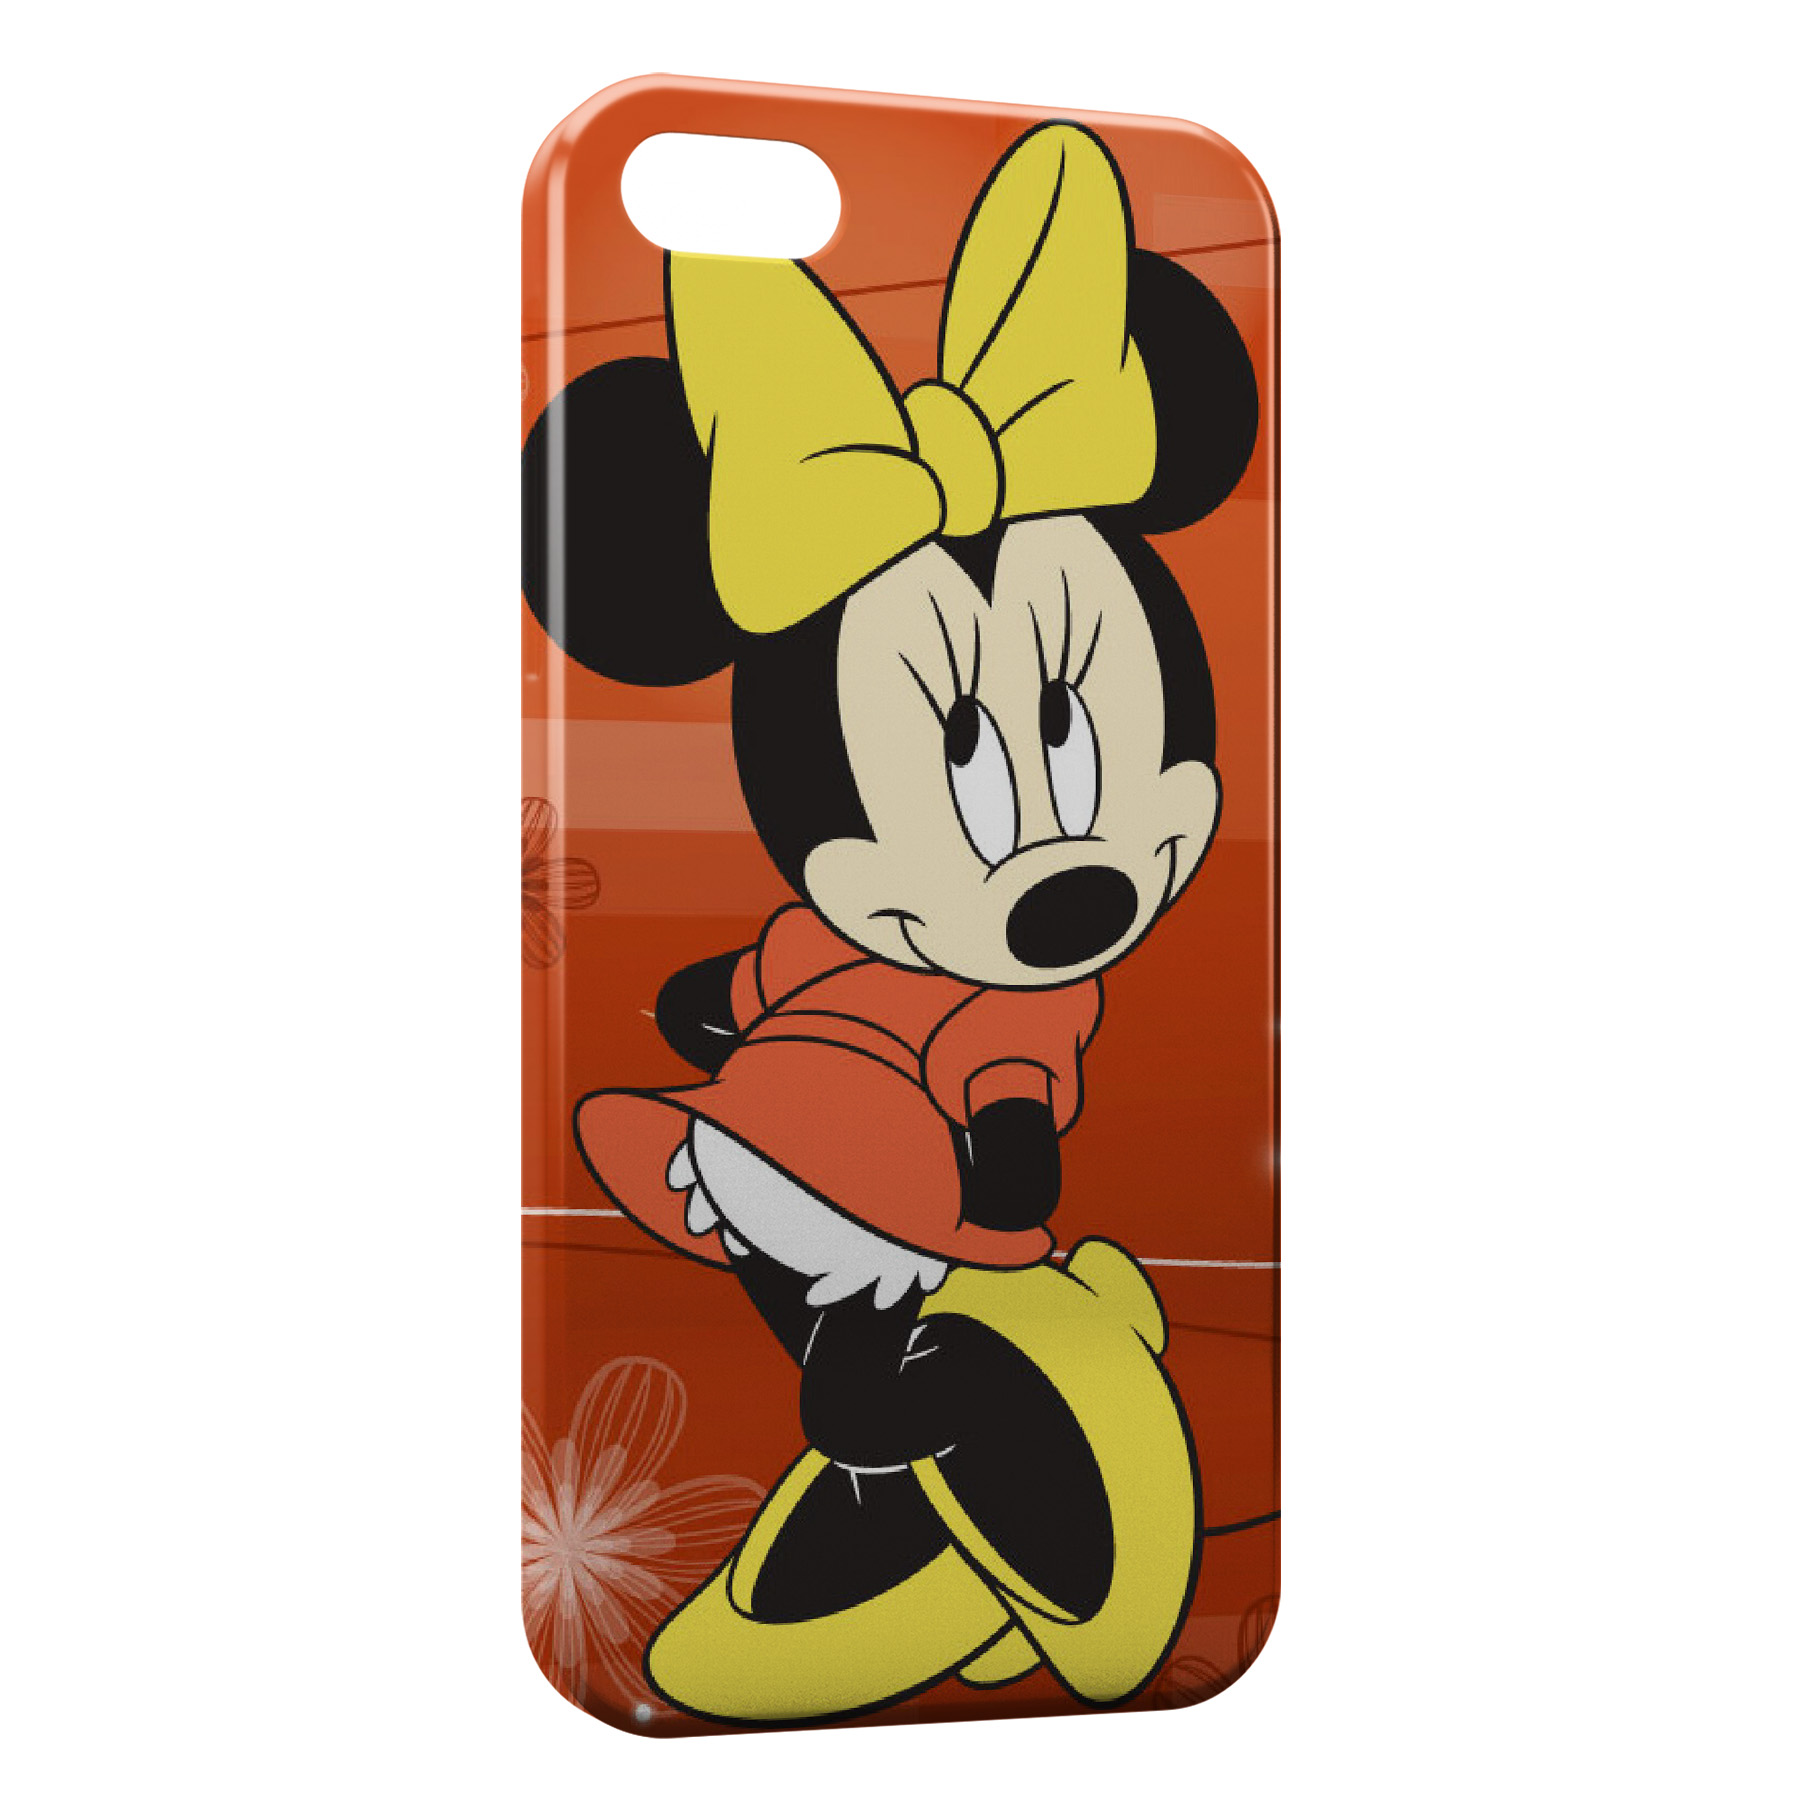 Coque iPhone 5C Minnie Mickey 5